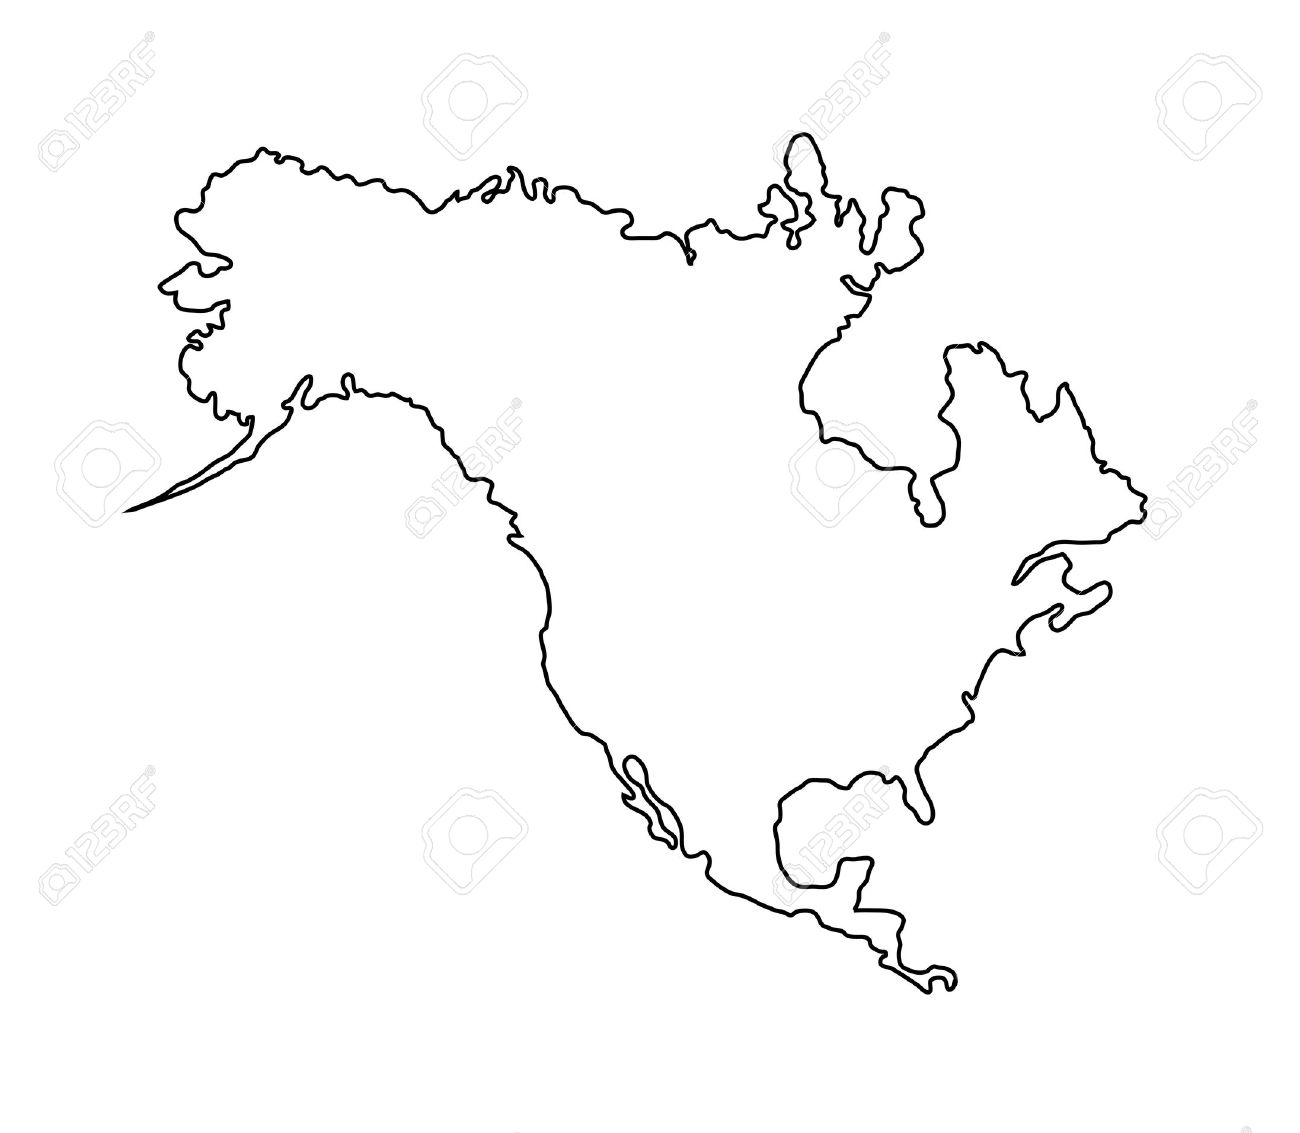 North America Map Isolated On White Stock Photo Picture And - North america map black and white